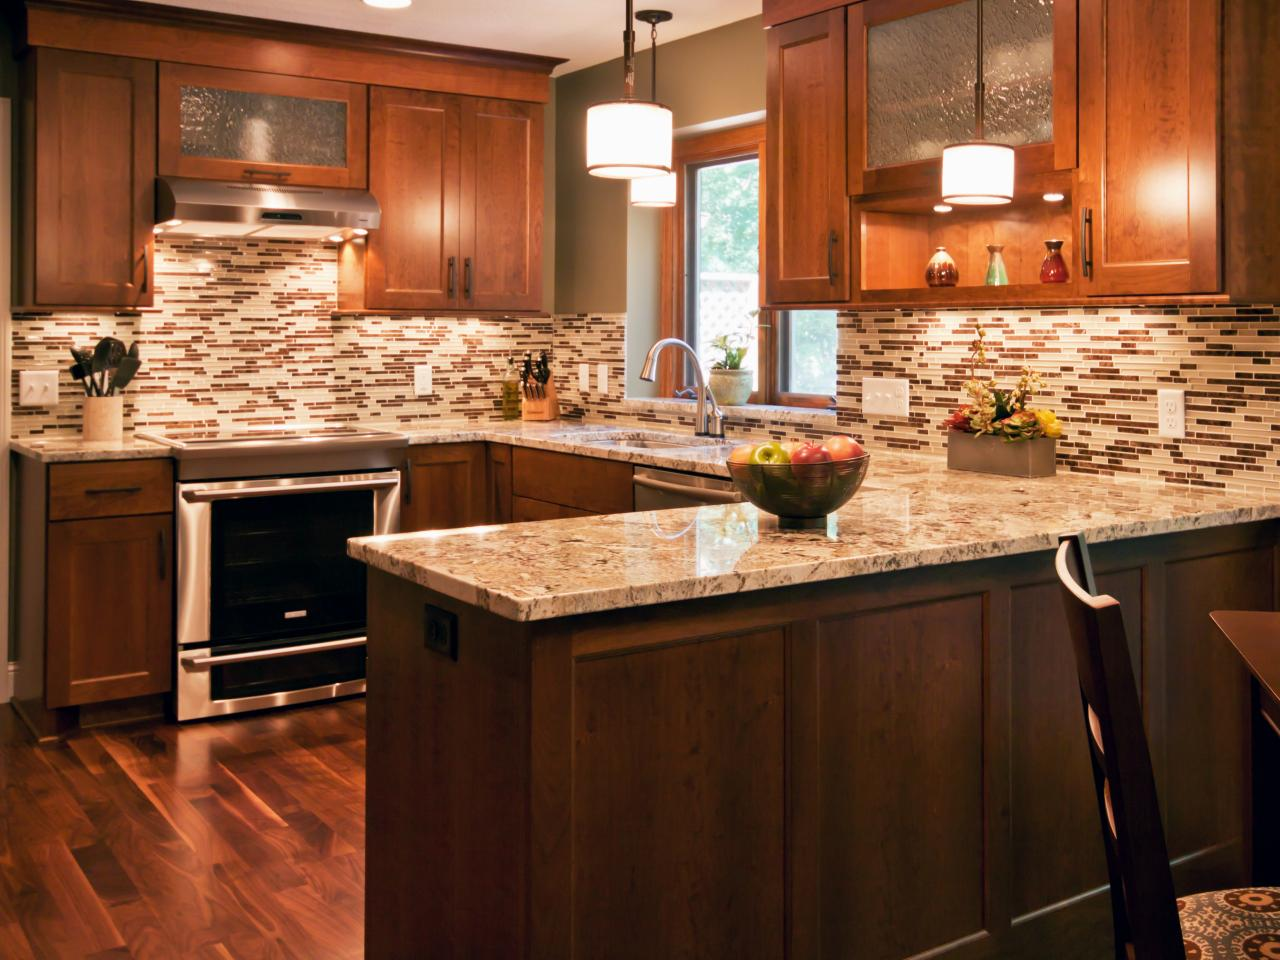 inexpensive kitchen backsplash ideas pictures from hgtv